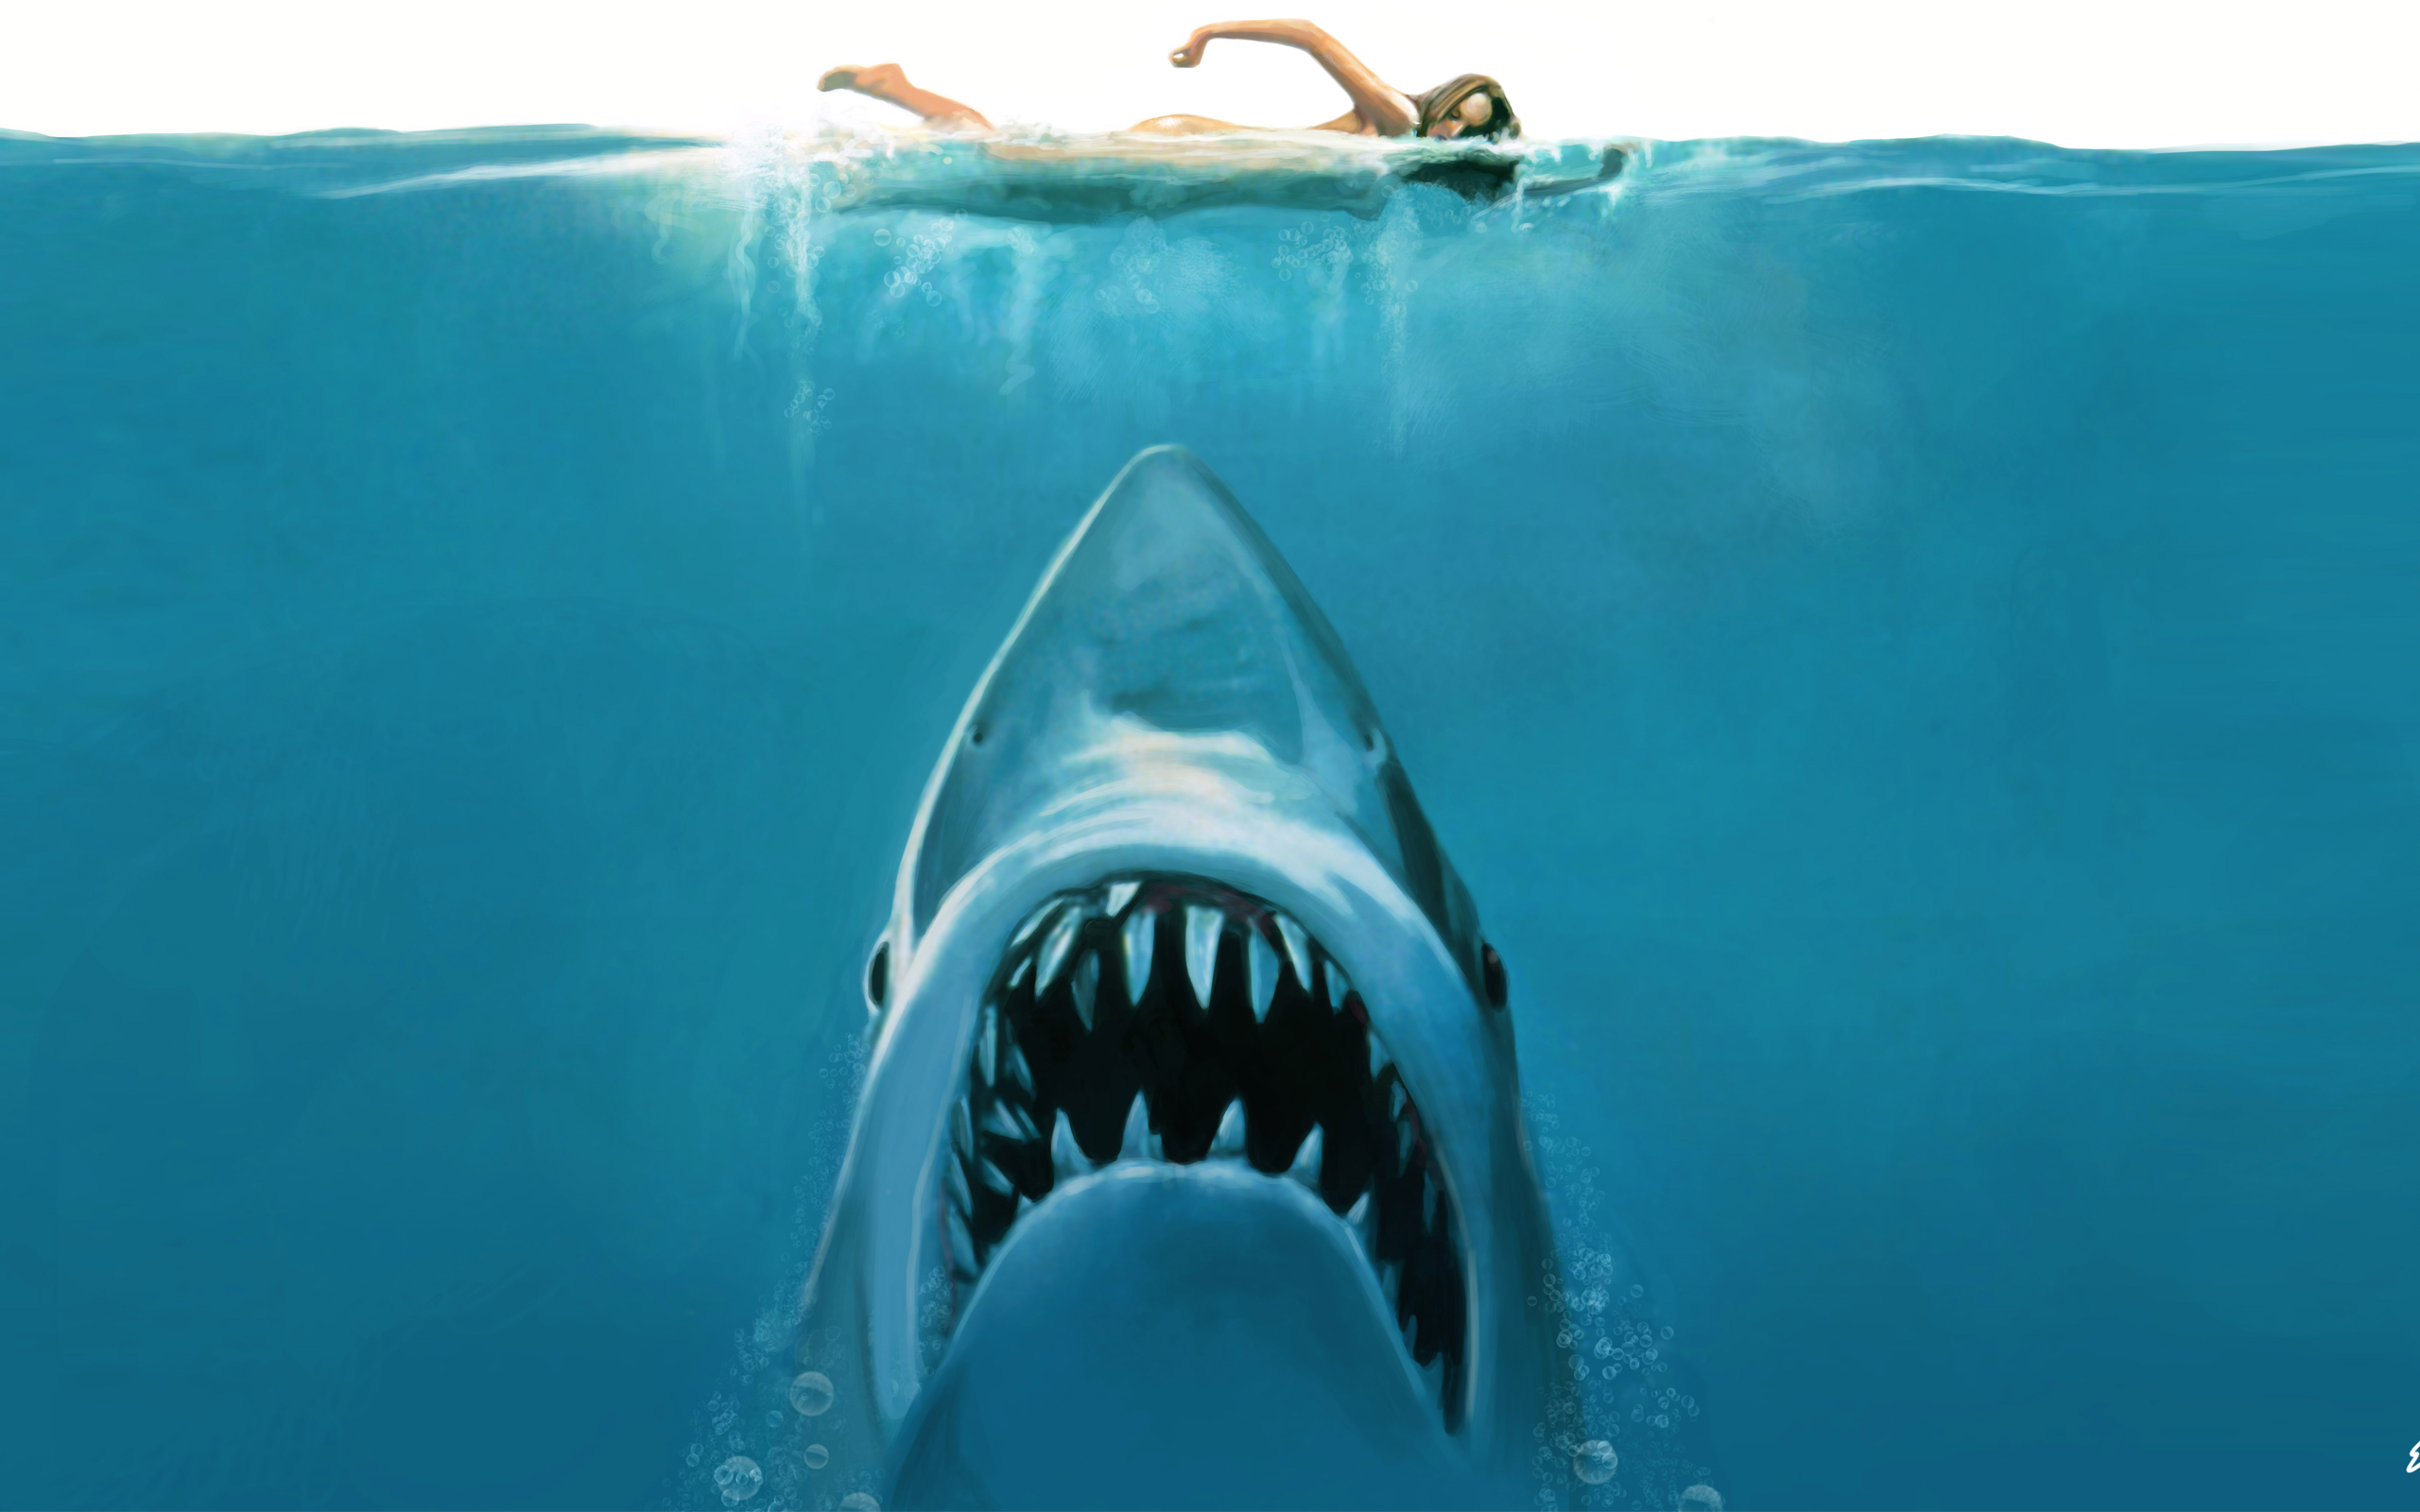 Jaws Theme Song | Movie Theme Songs & TV Soundtracks